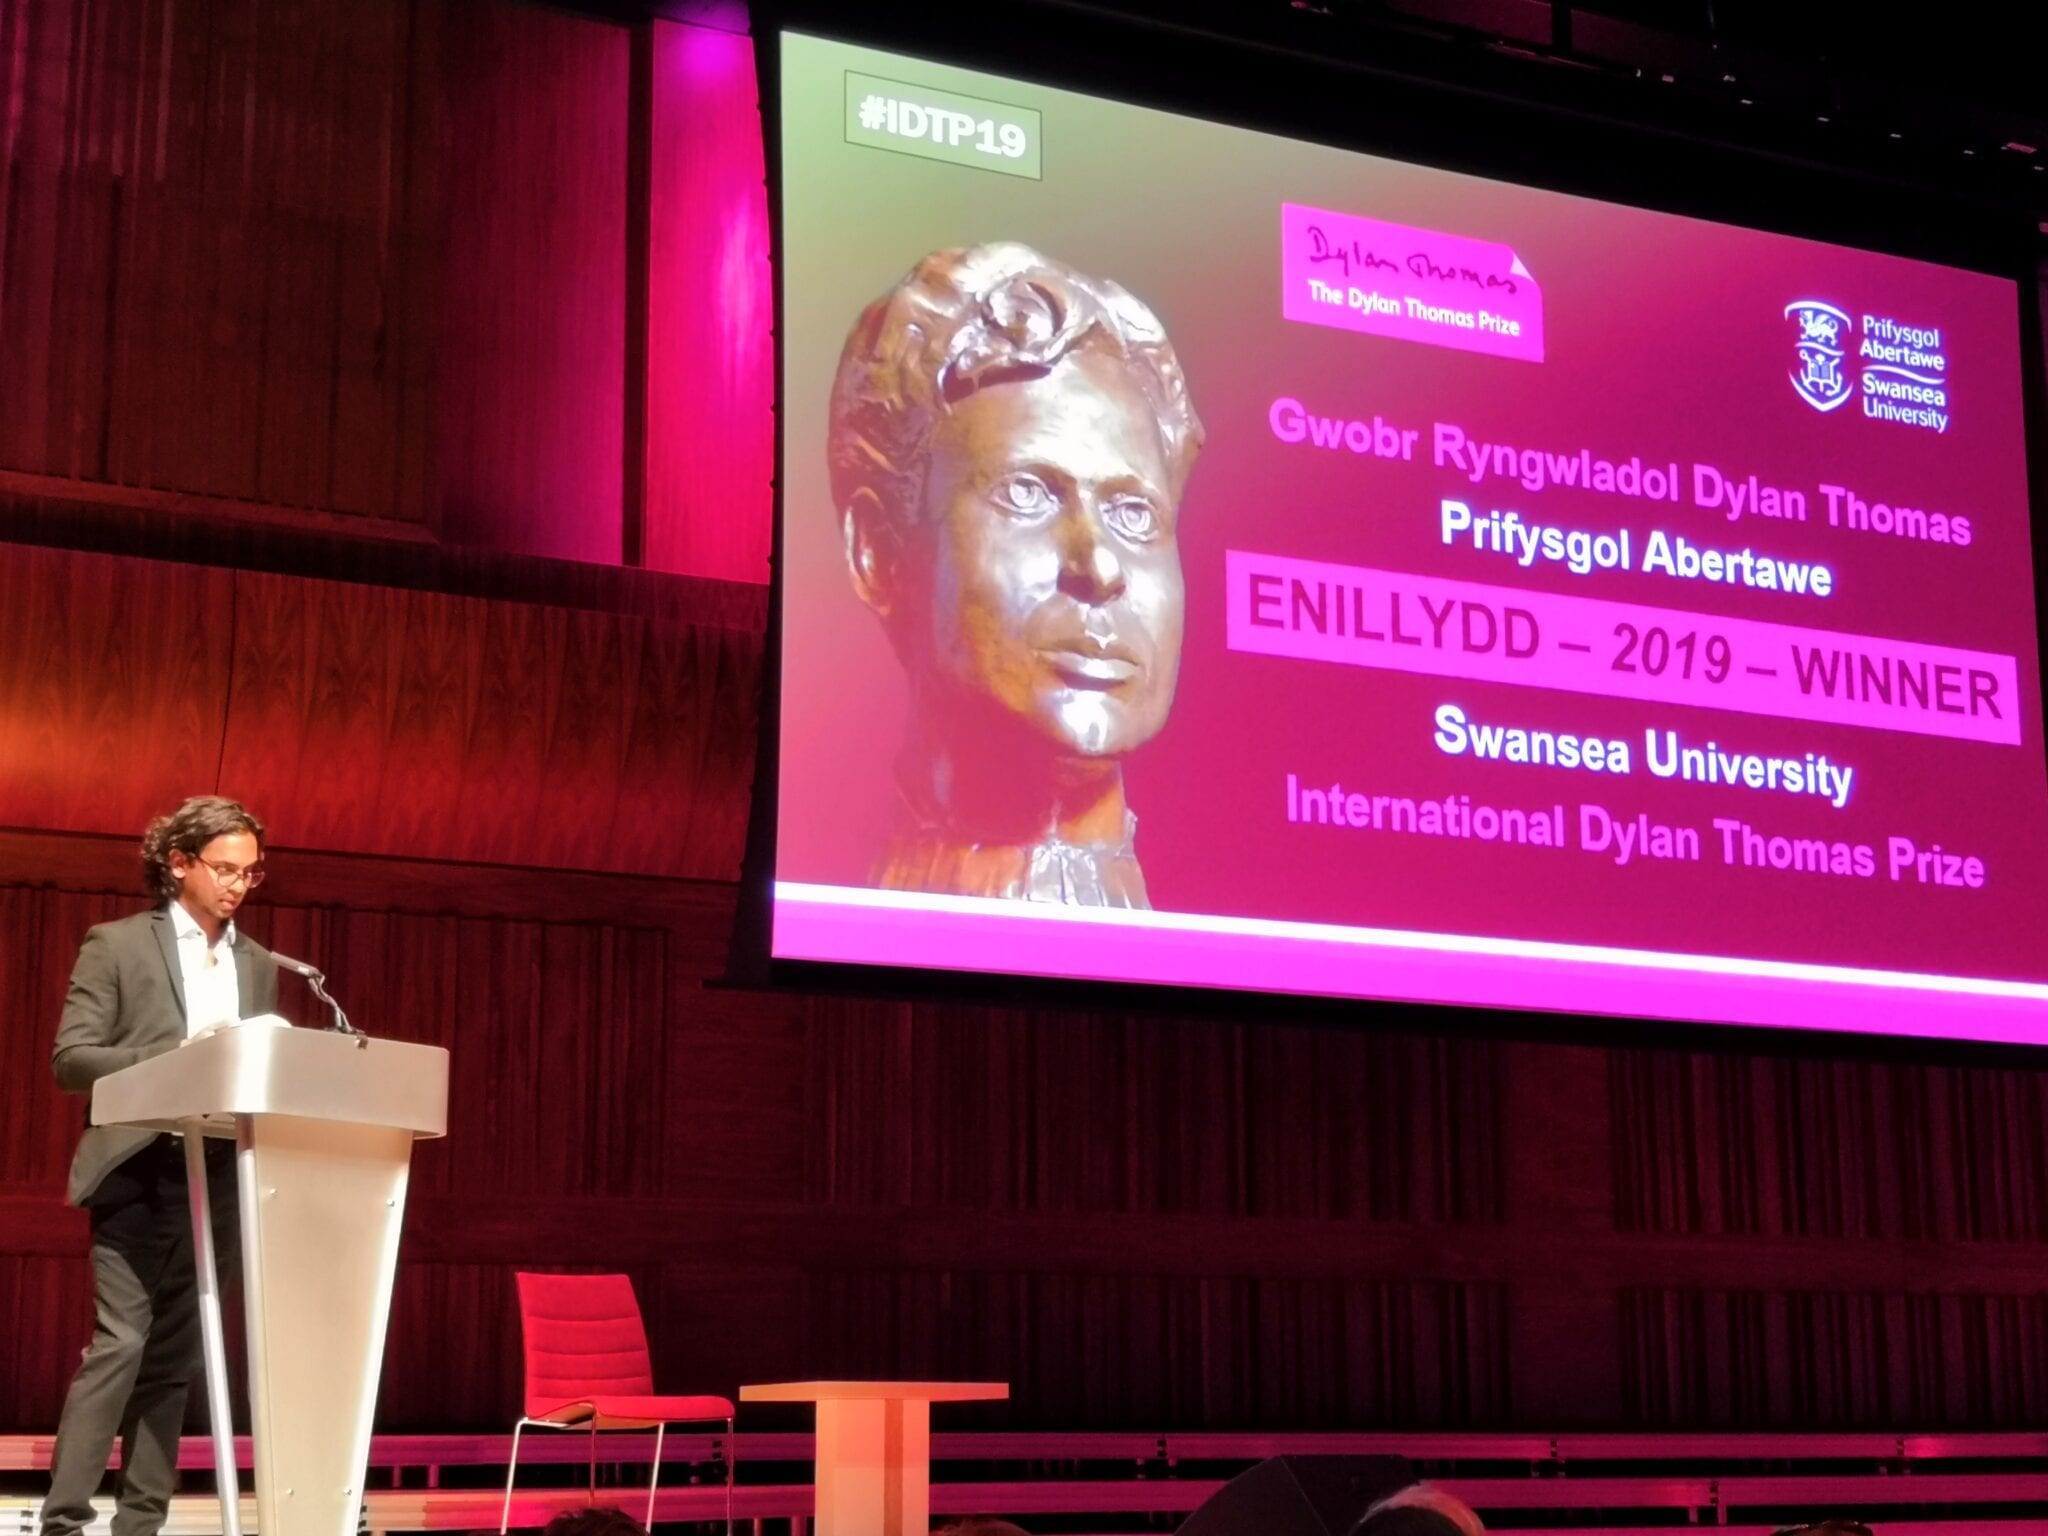 Inside Swansea University's International Dylan Thomas Prize Module – Part 2